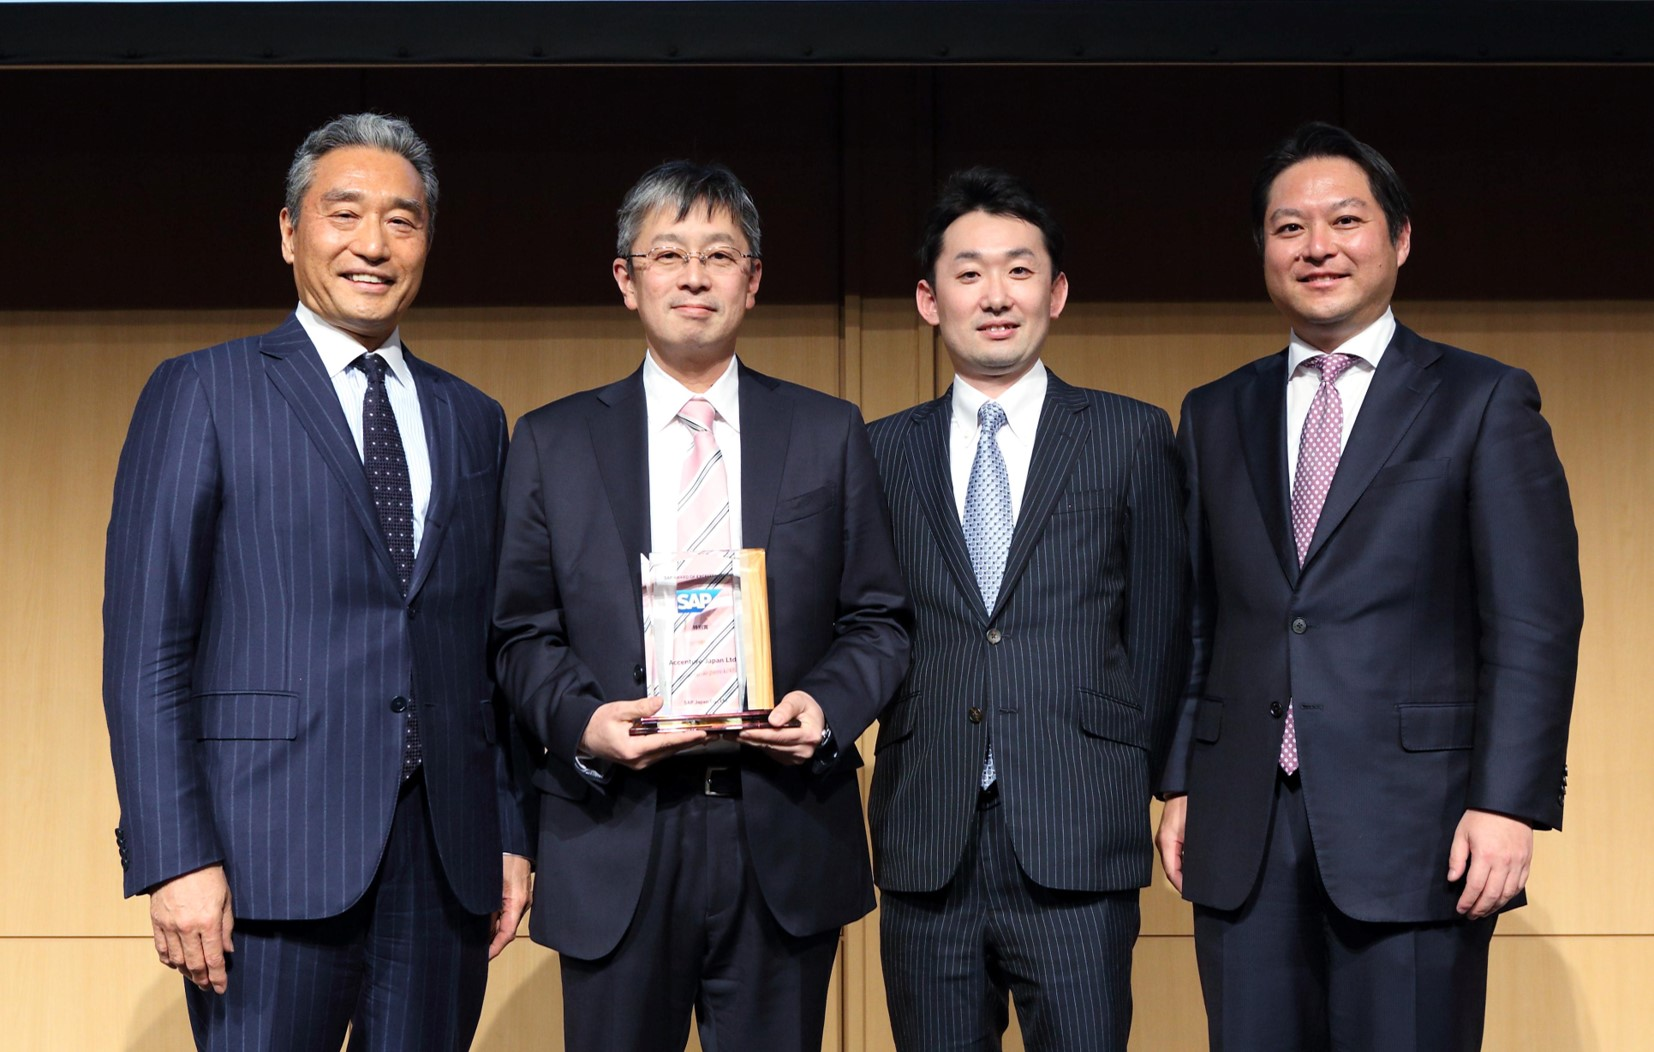 「SAP AWARD OF EXCELLENCE 2017」の受賞アワード